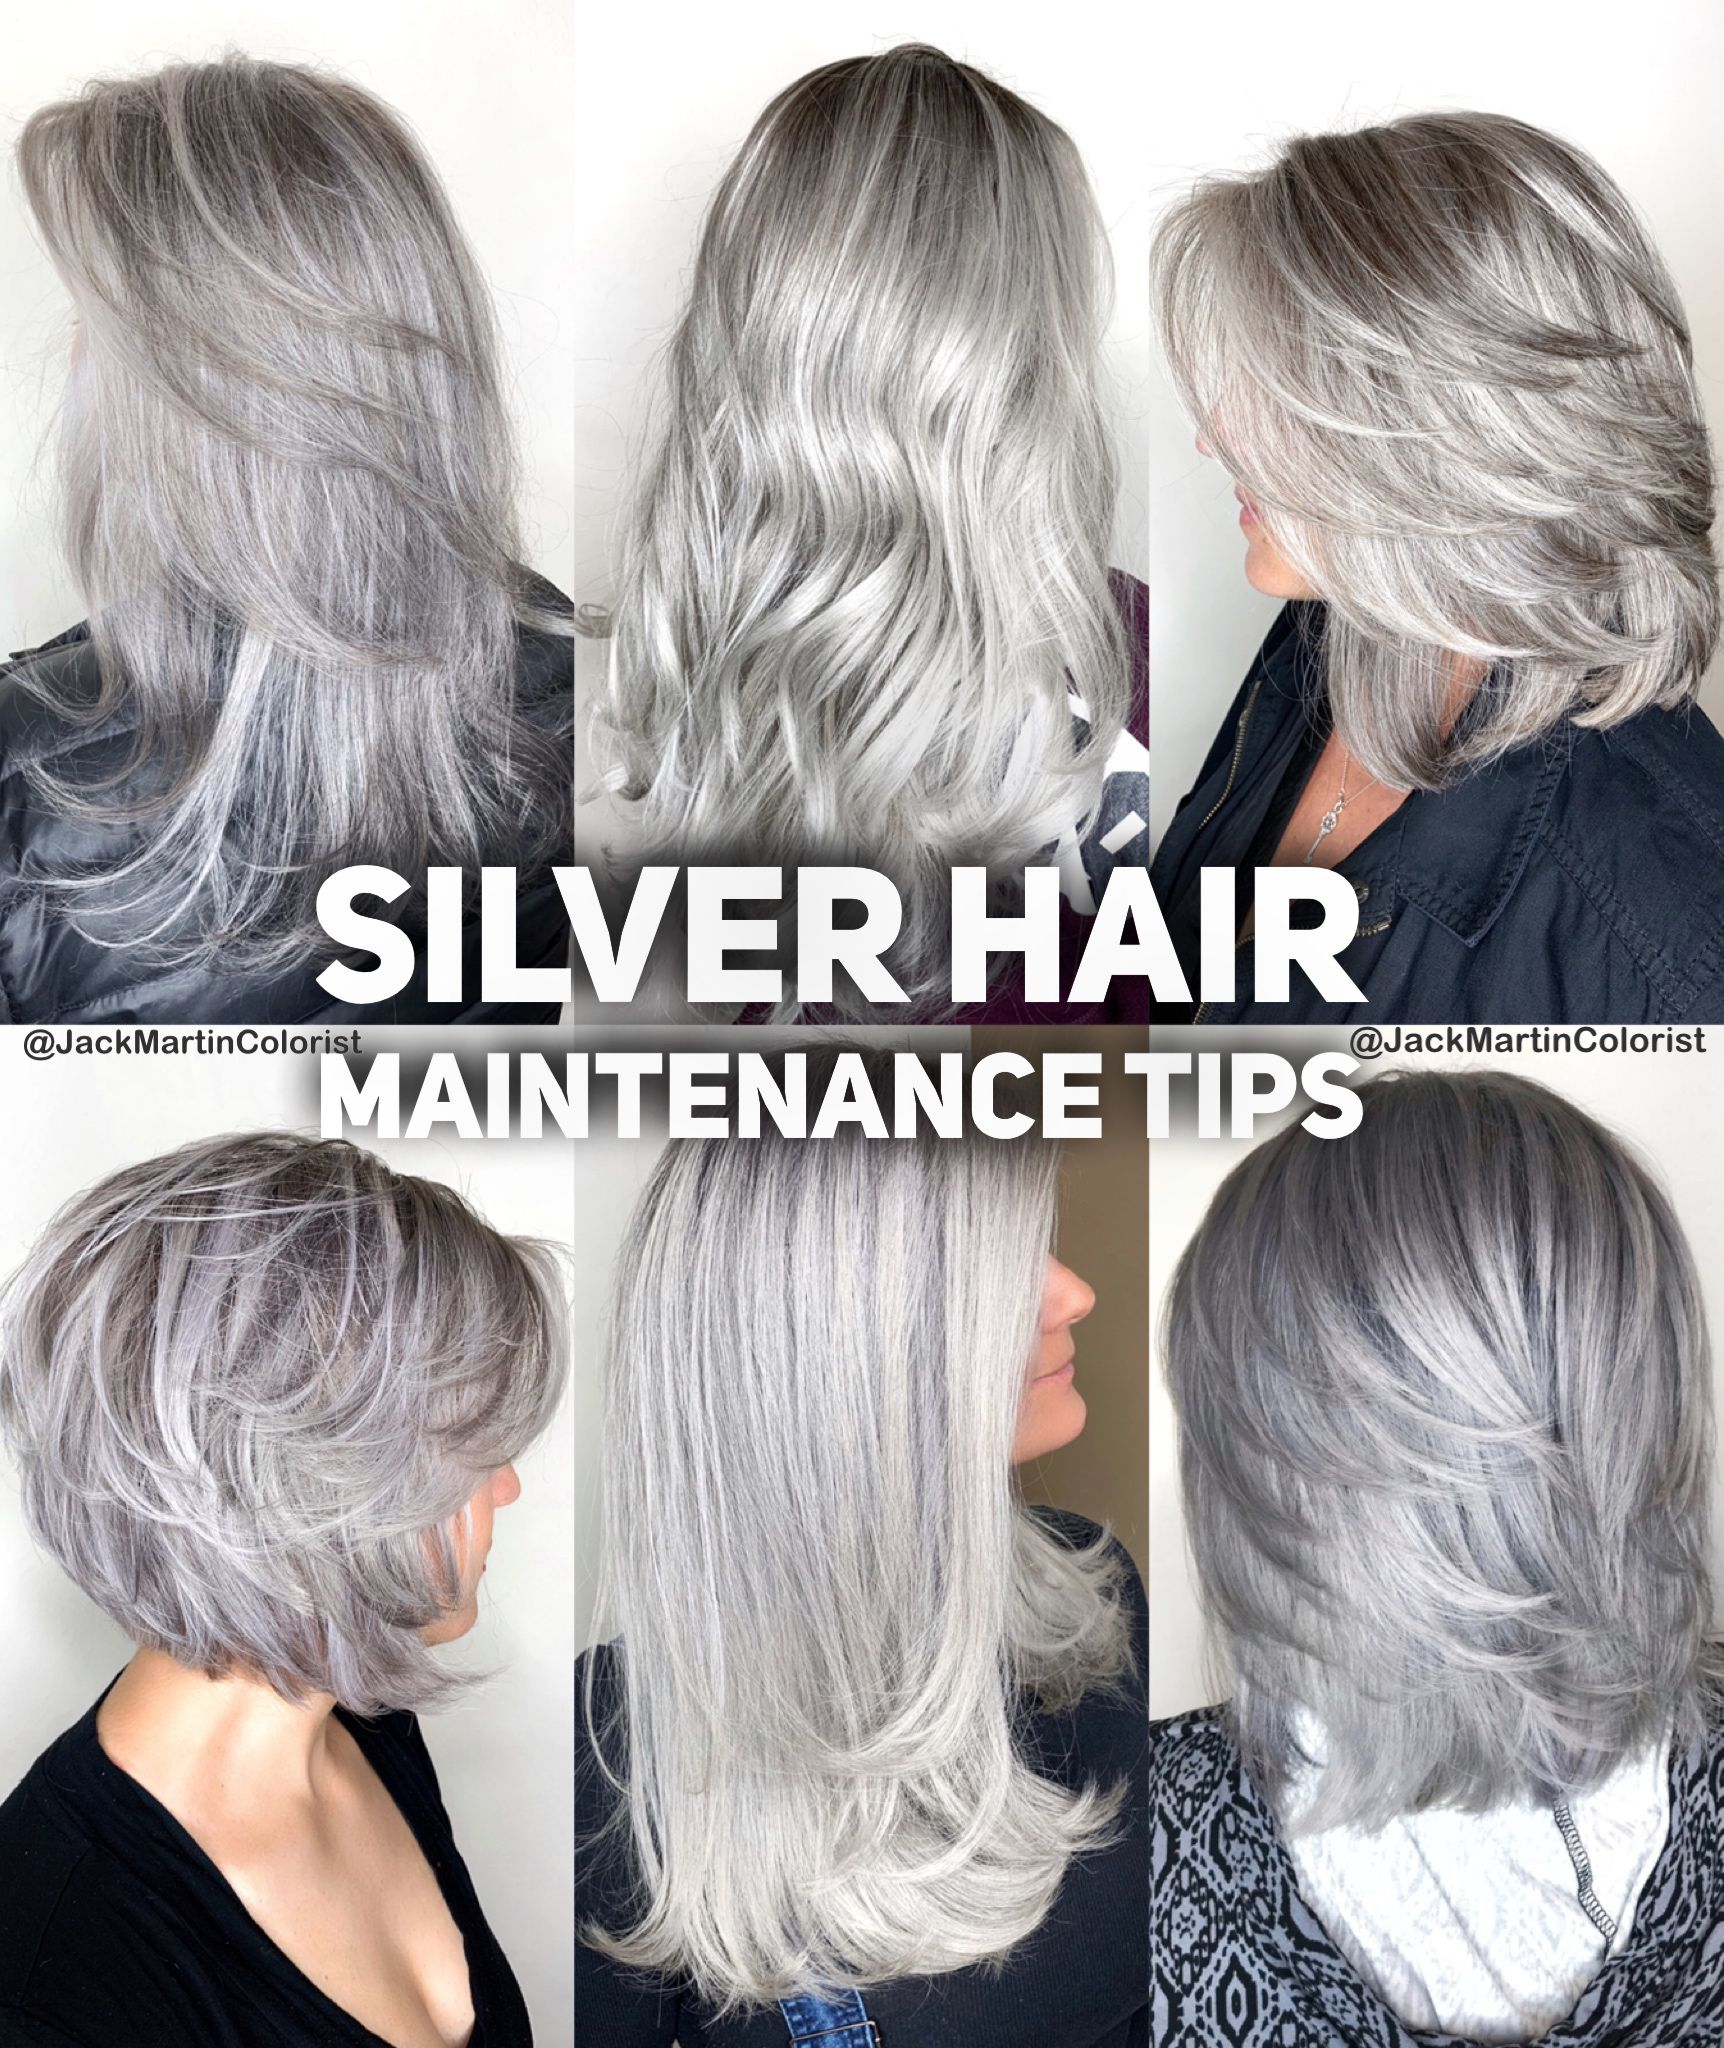 Silver Is A Beautiful Color For Hair But Maintaining It Can Be